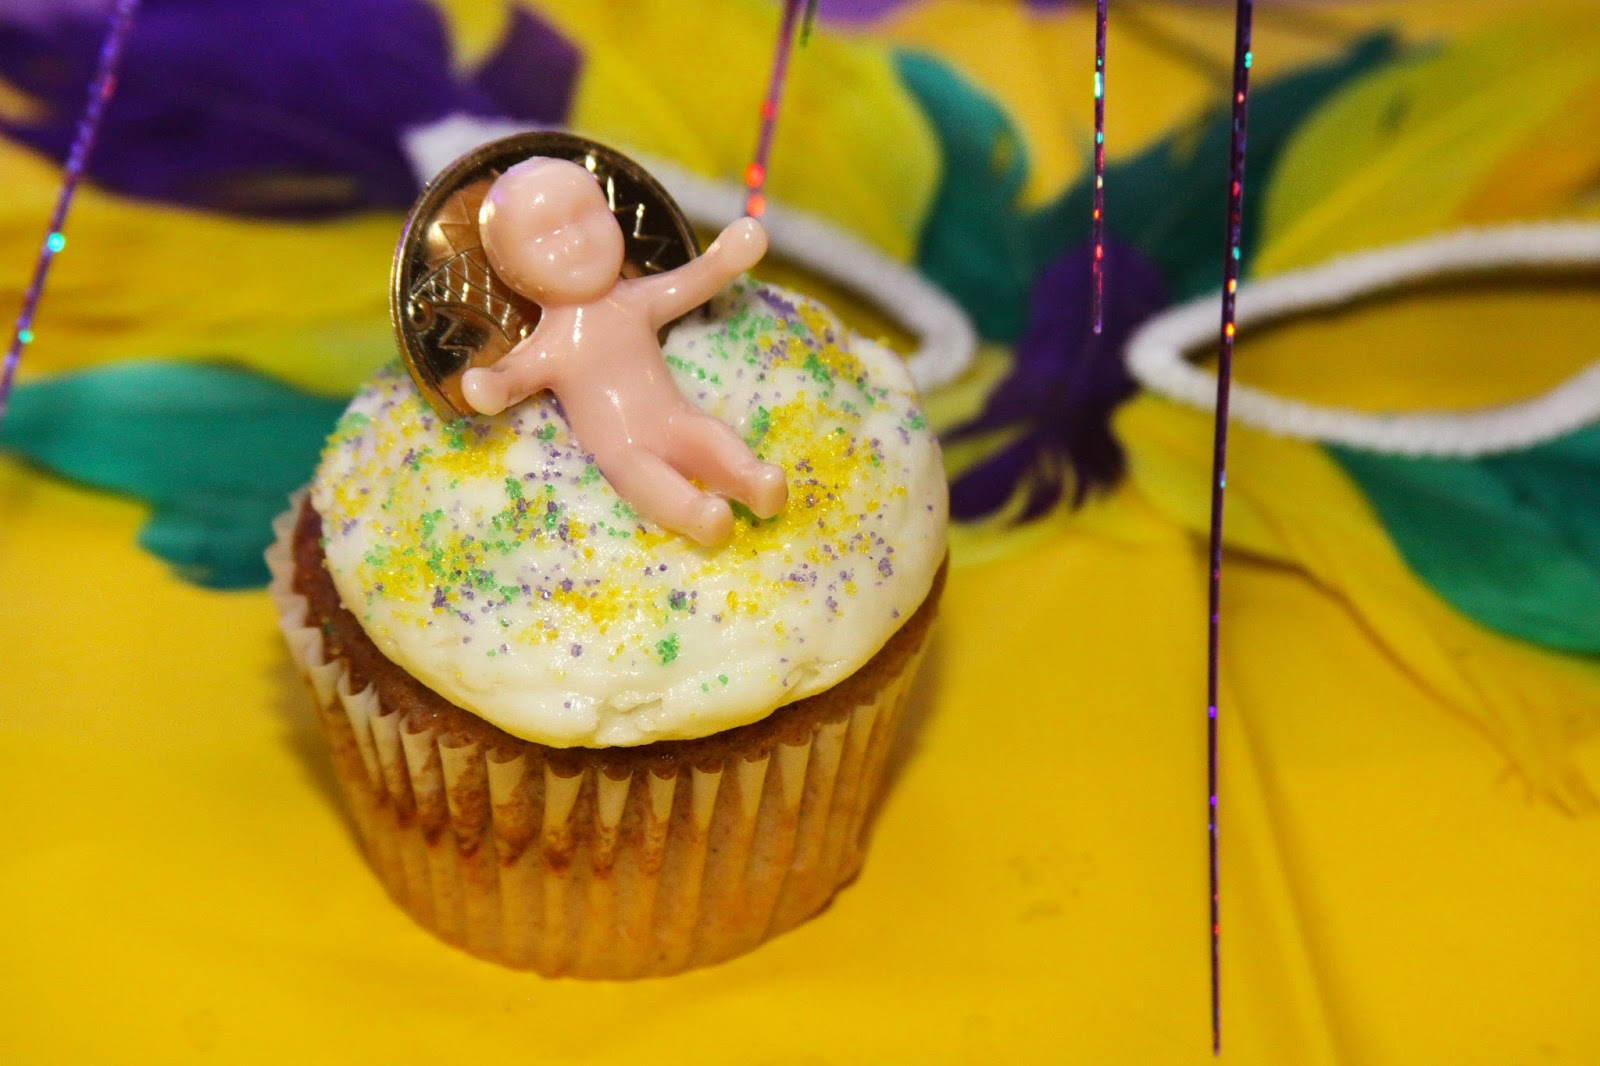 King Cake Flavored Cupcakes